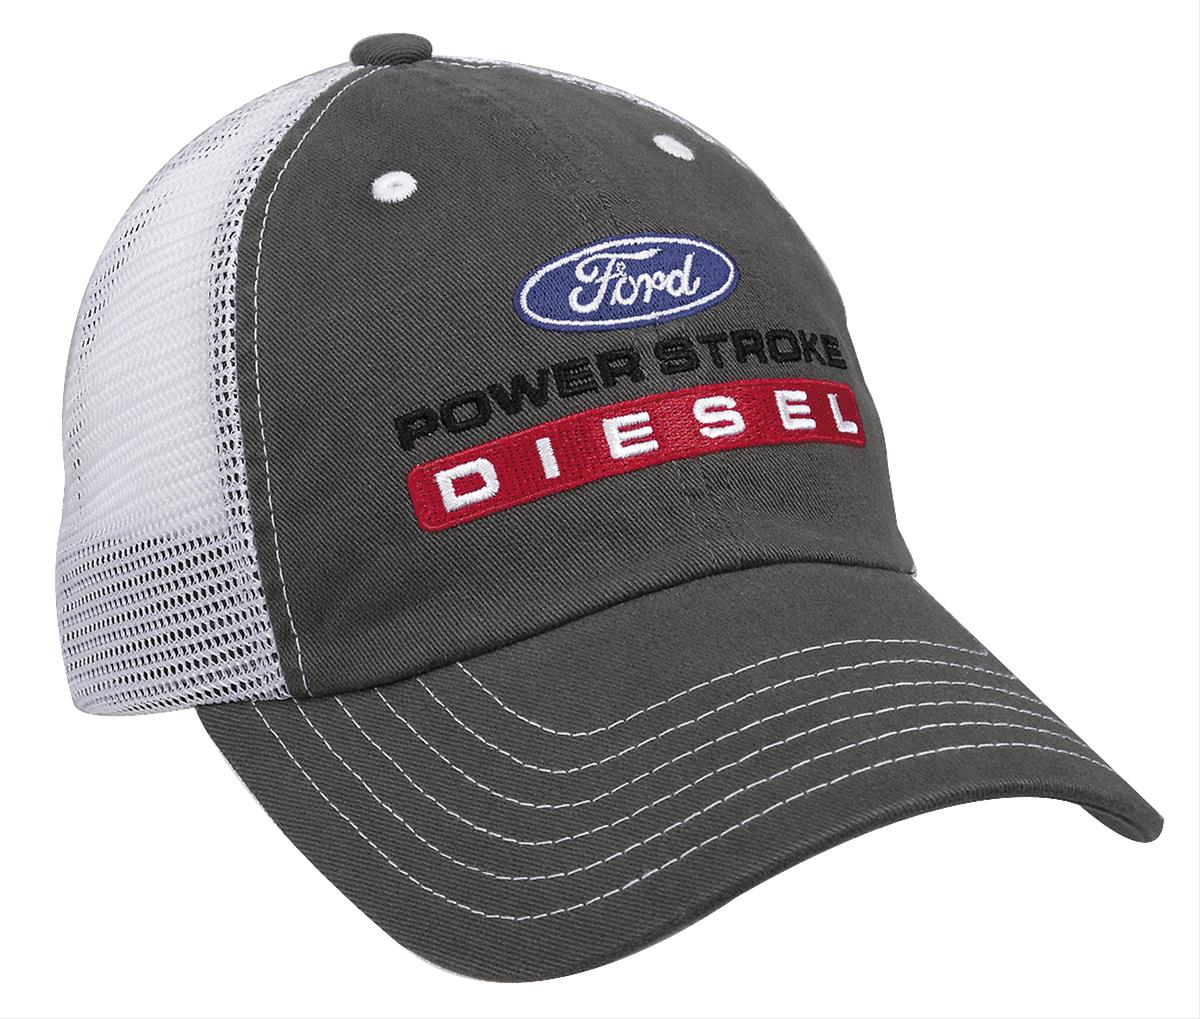 8c4bad51 Ford Powerstroke Diesel Trucker Cap D7765 - Free Shipping on Orders Over  $99 at Summit Racing